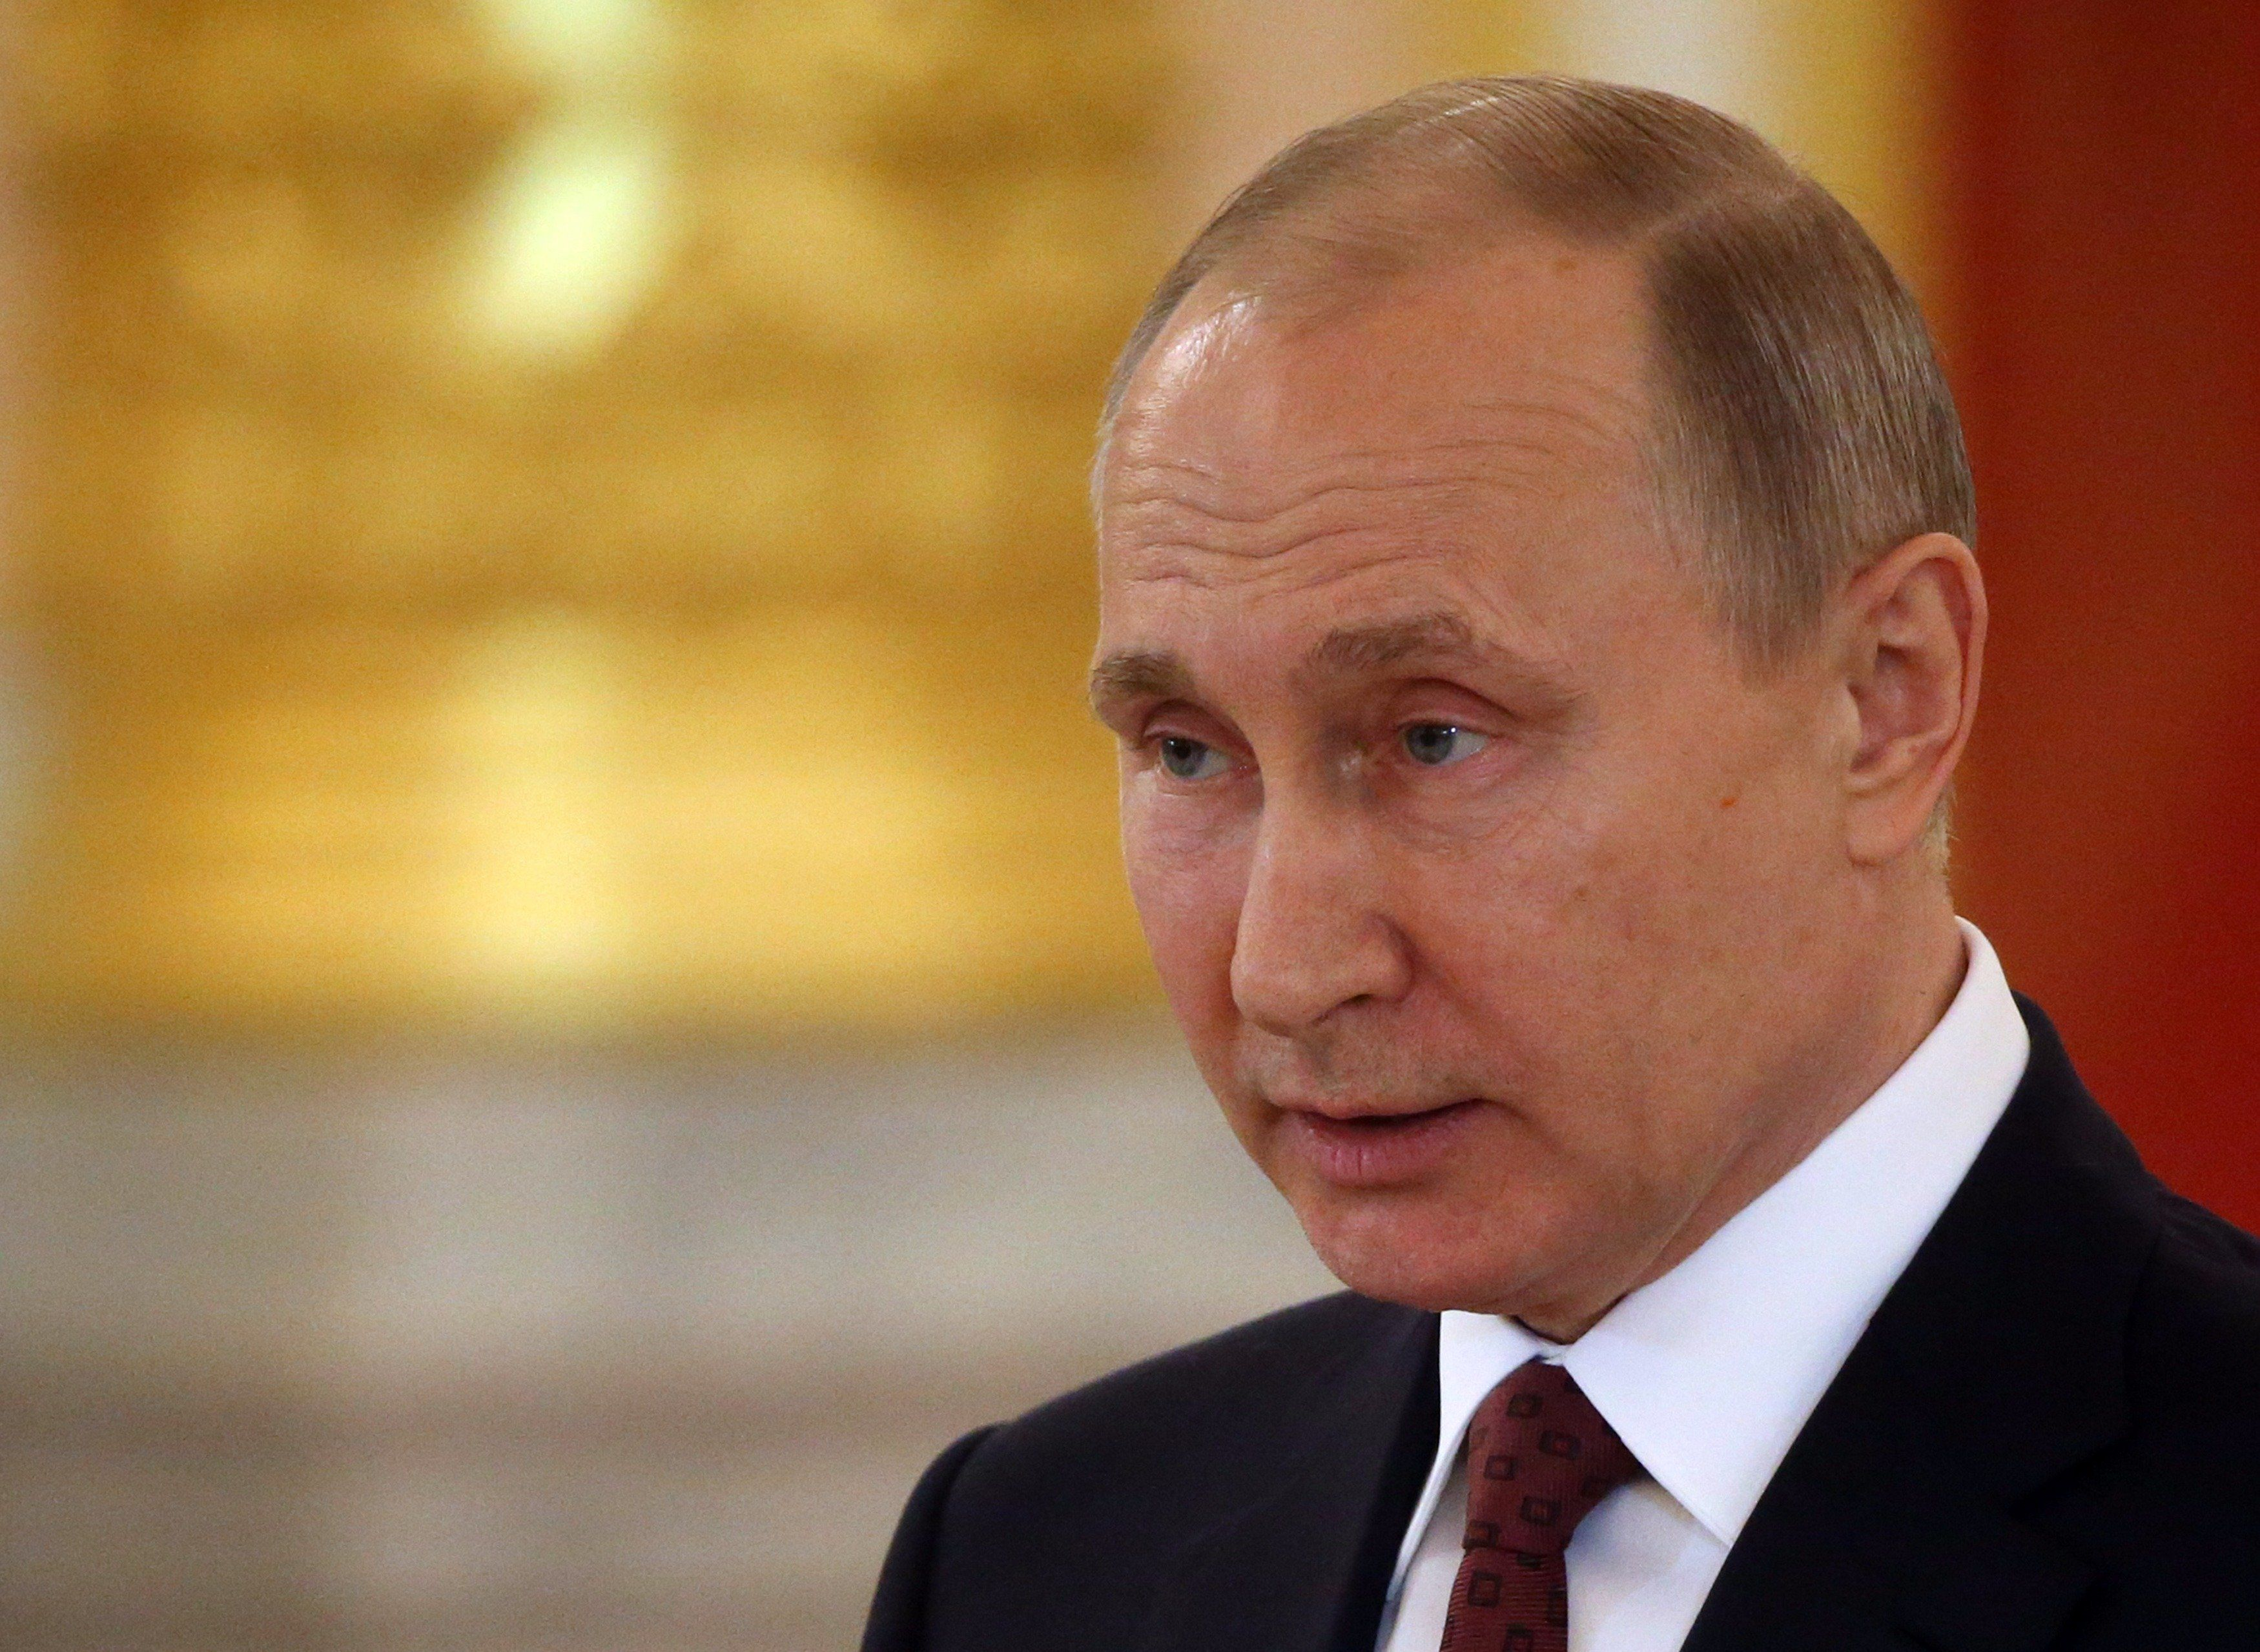 The Russians Are Hacking Everything, Laying the Groundwork for Future Attacks